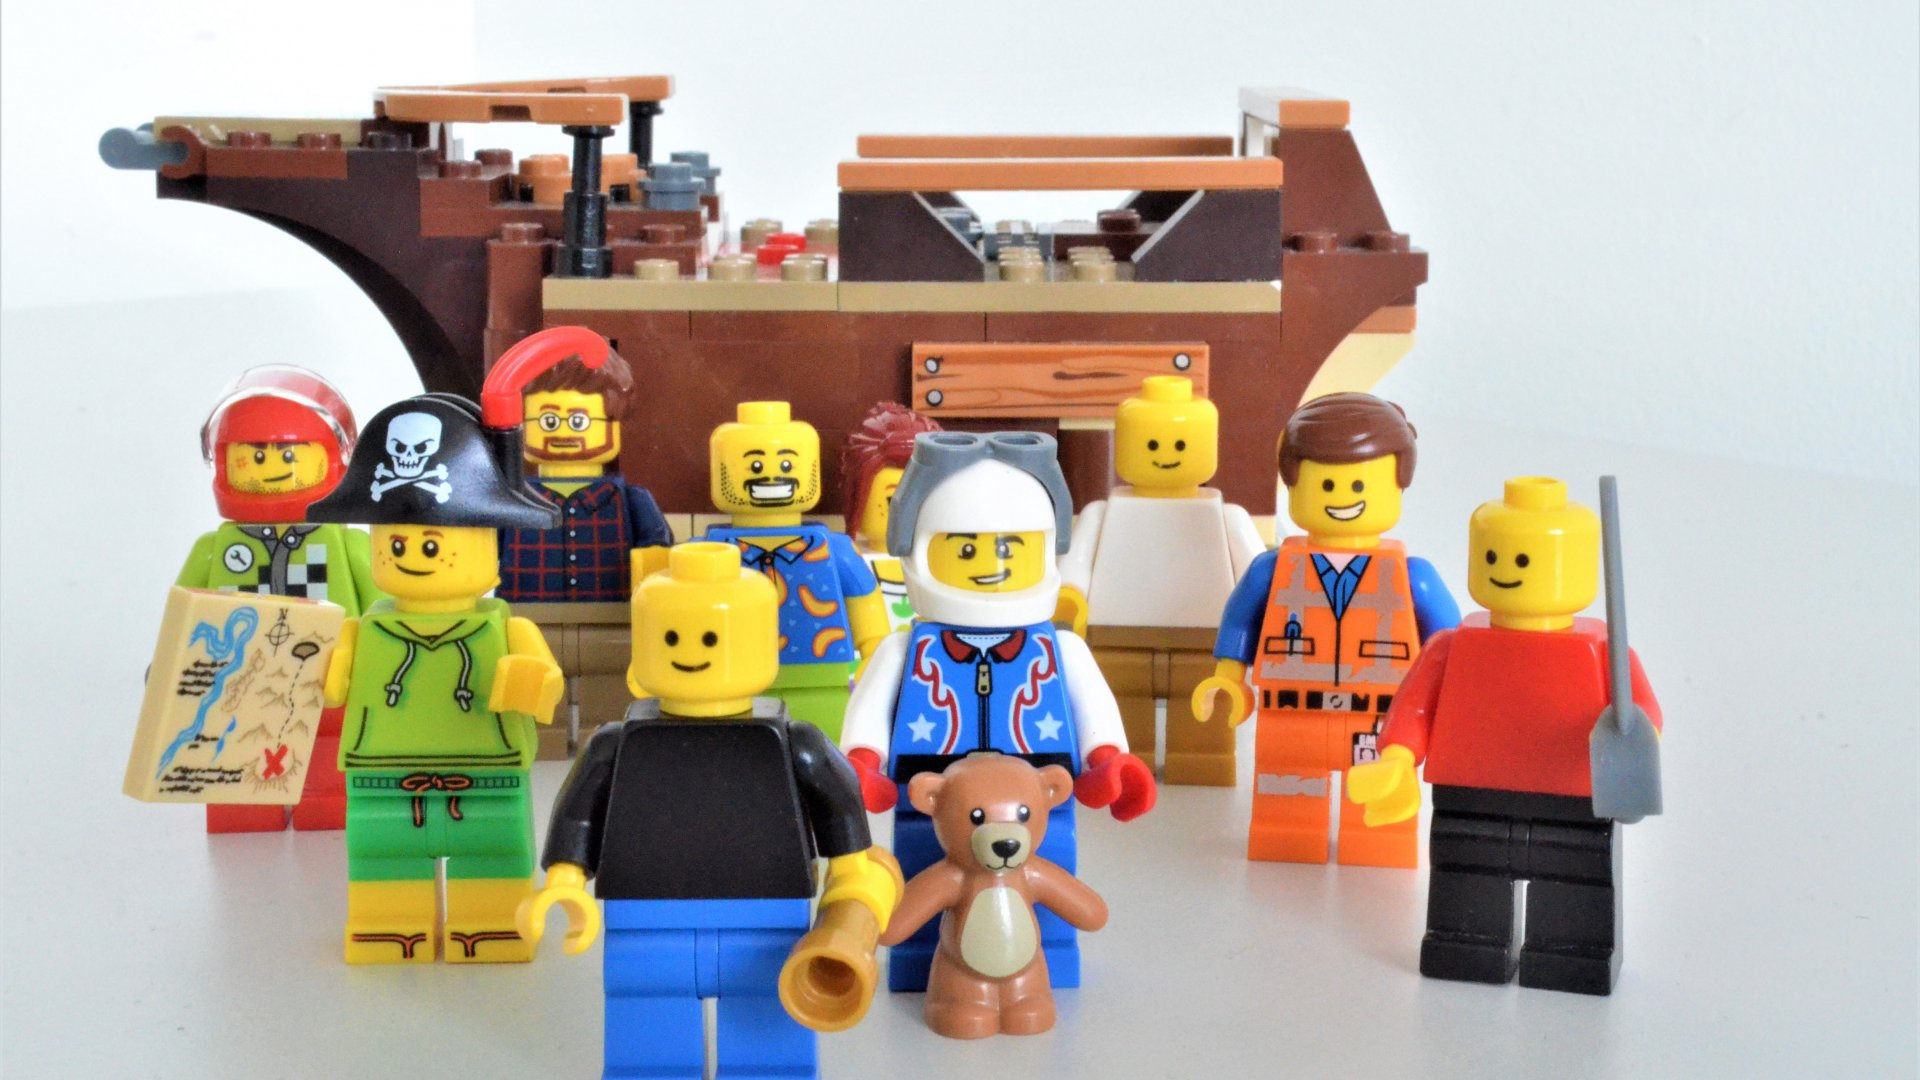 7 Entrepreneurial Insights From LEGO Playtime With My Kids